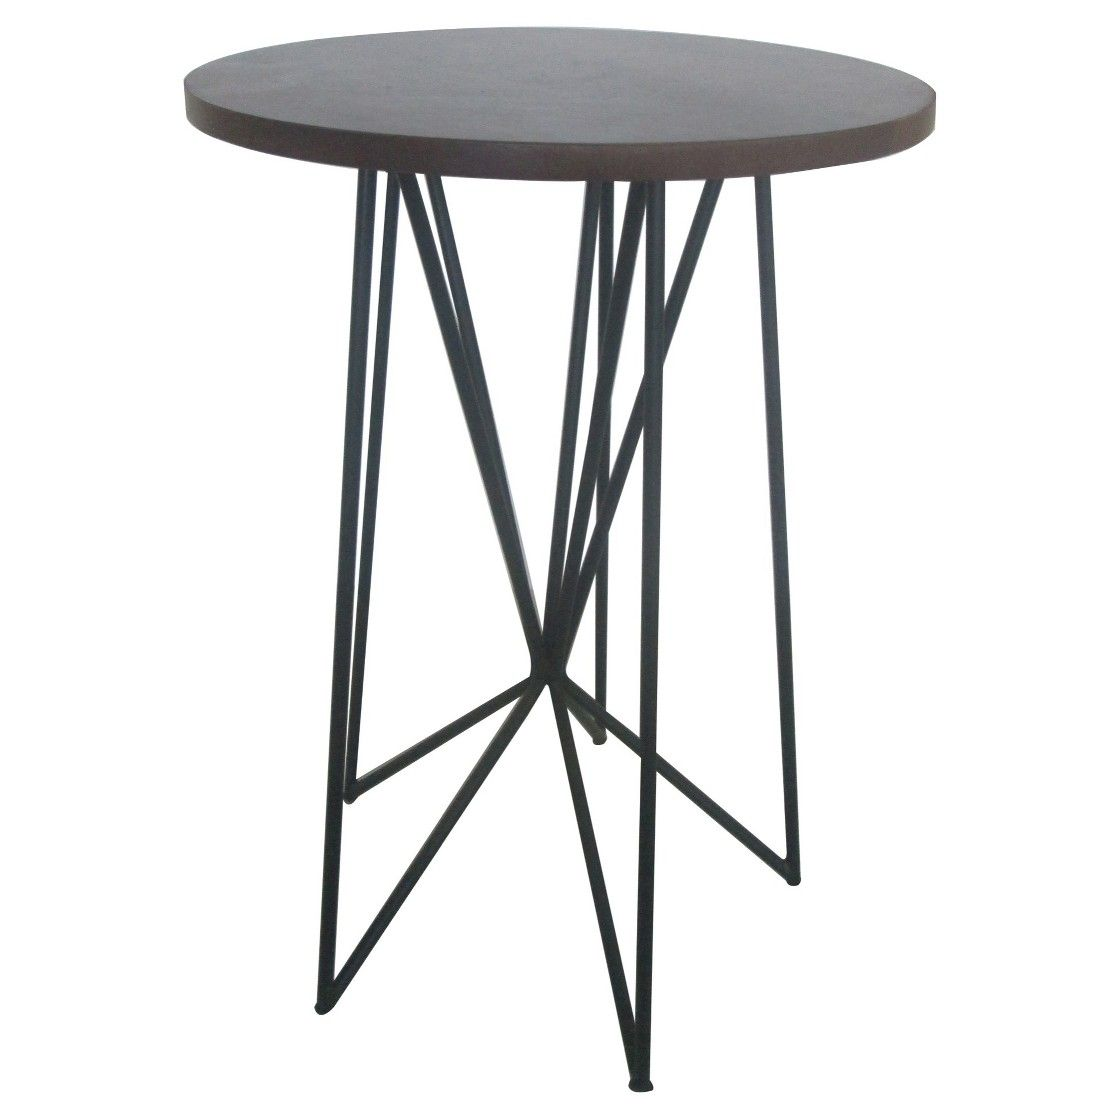 room essentials mixed material accent table black furniture white cute tablecloths house accessories pier import dining west elm tripod floor lamp metal glass top side farm set